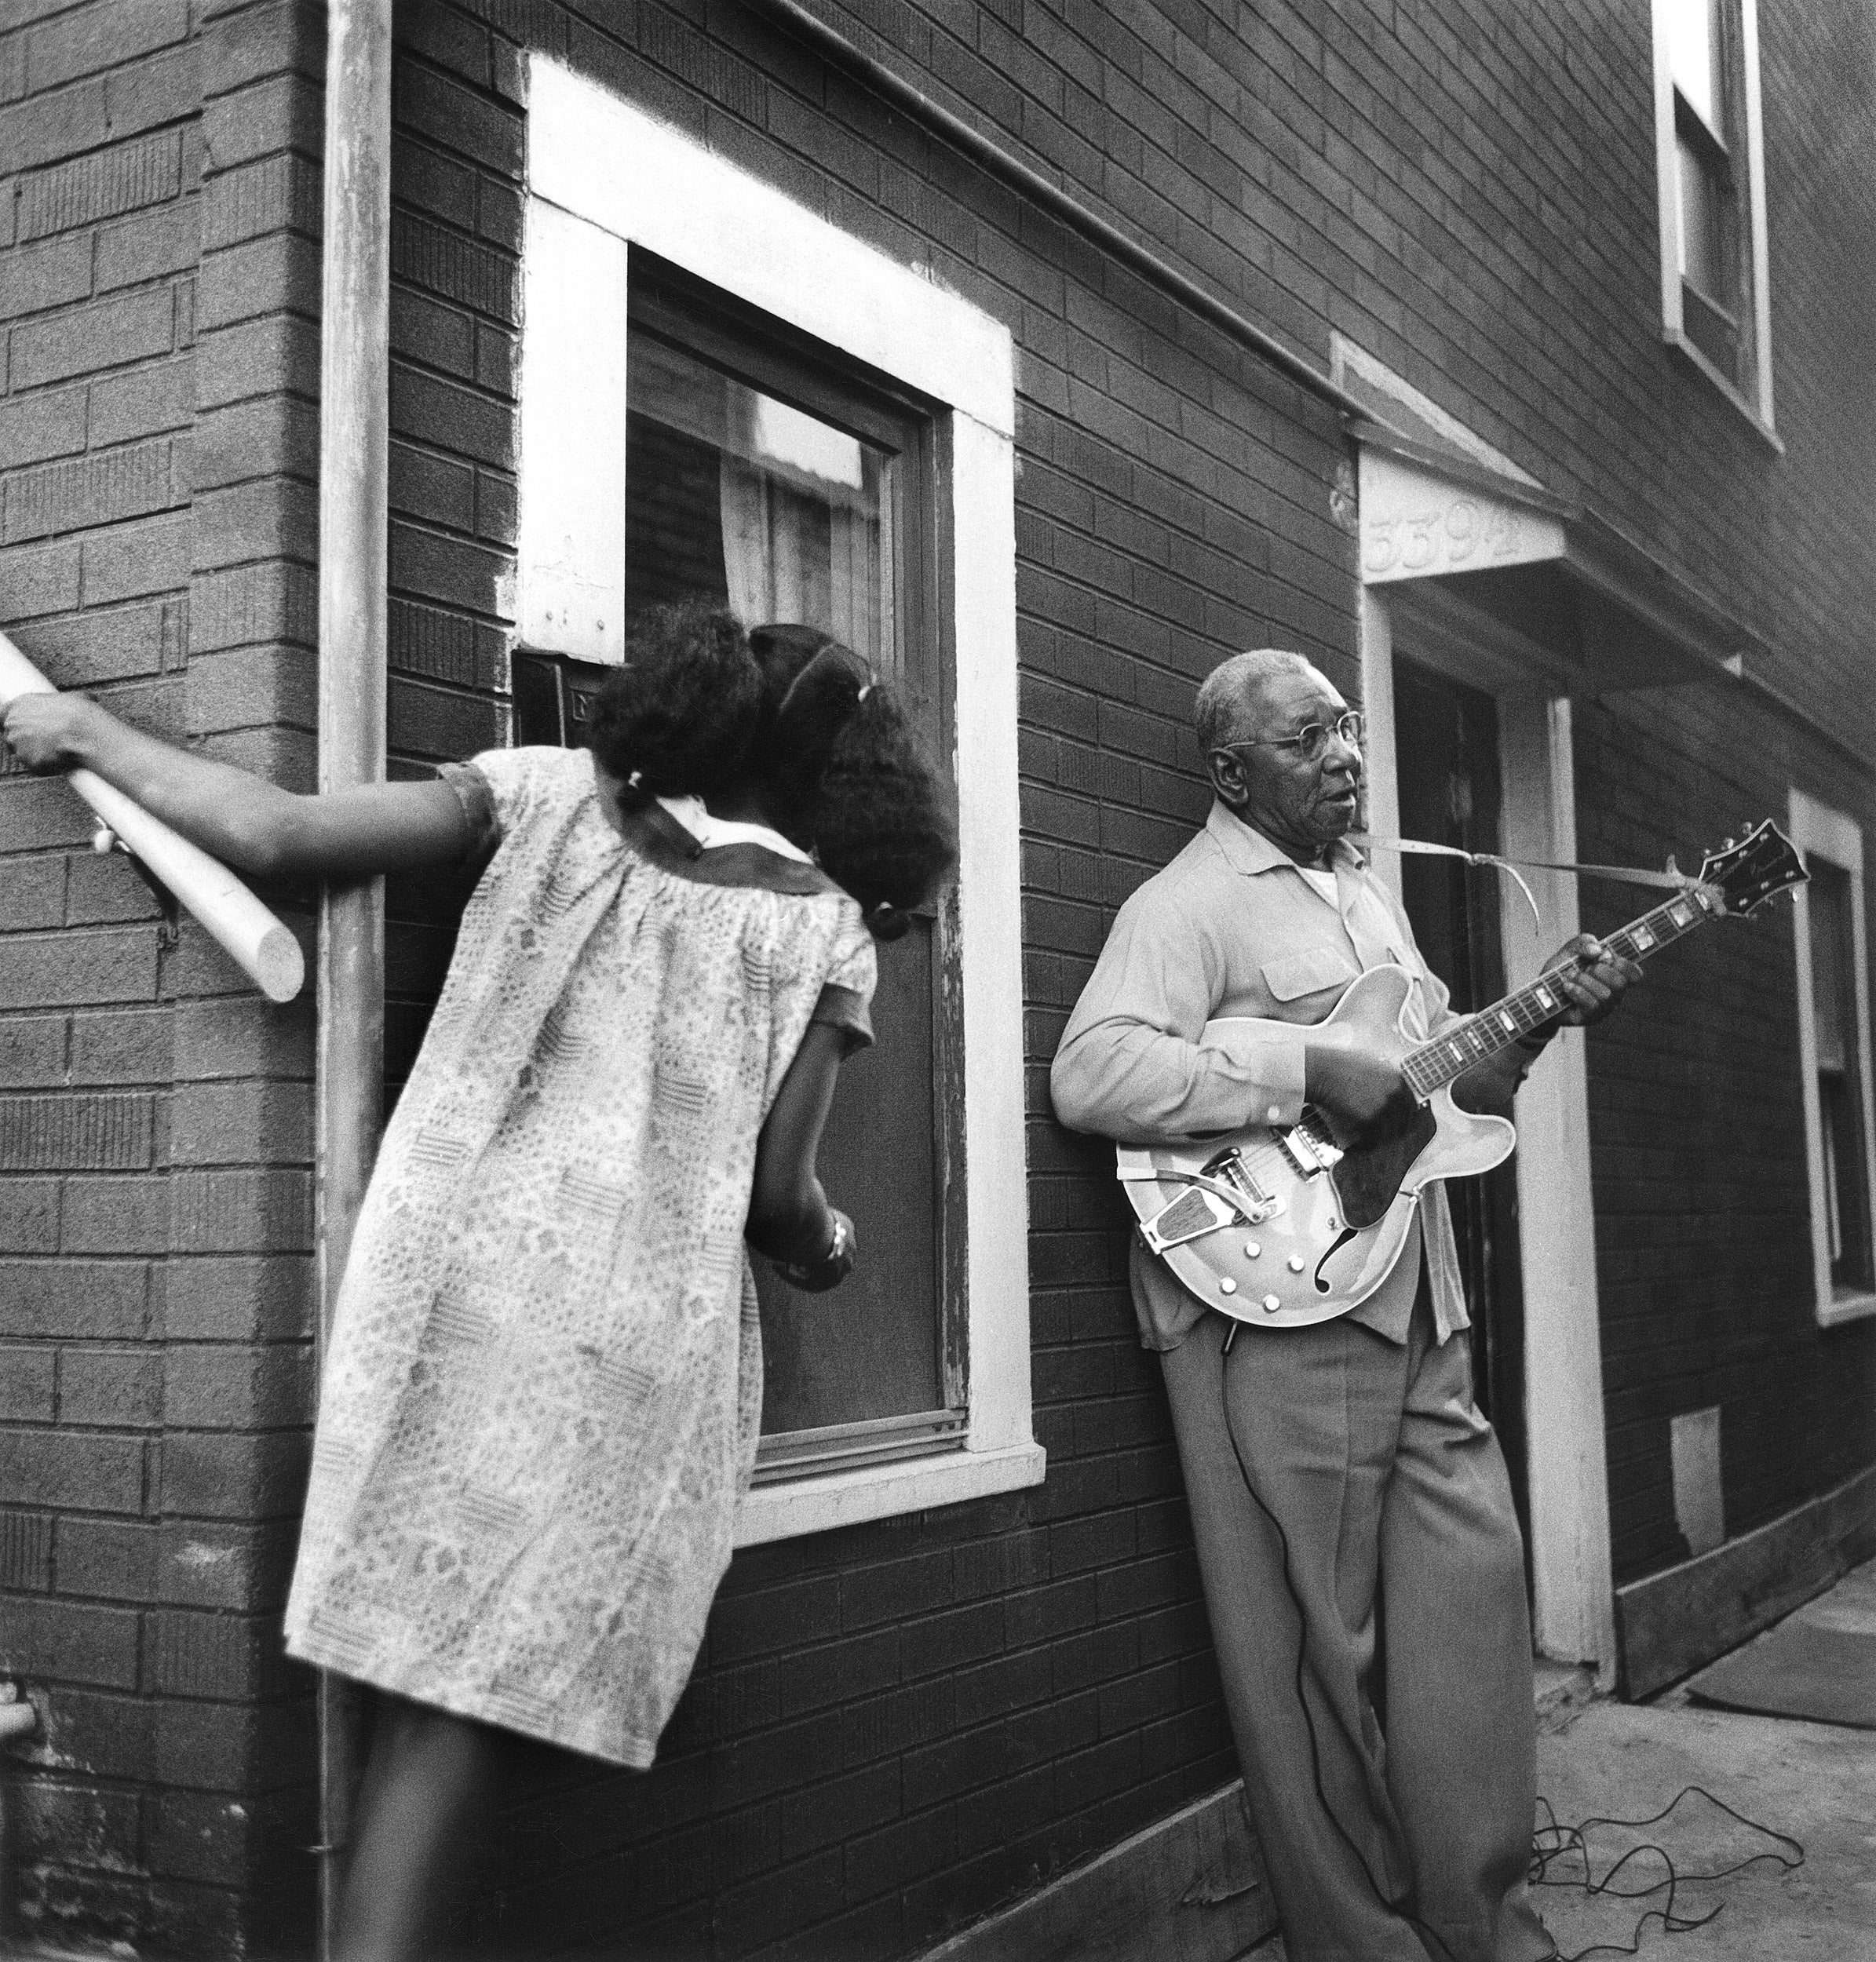 Girl watches man play guitar in 1965.